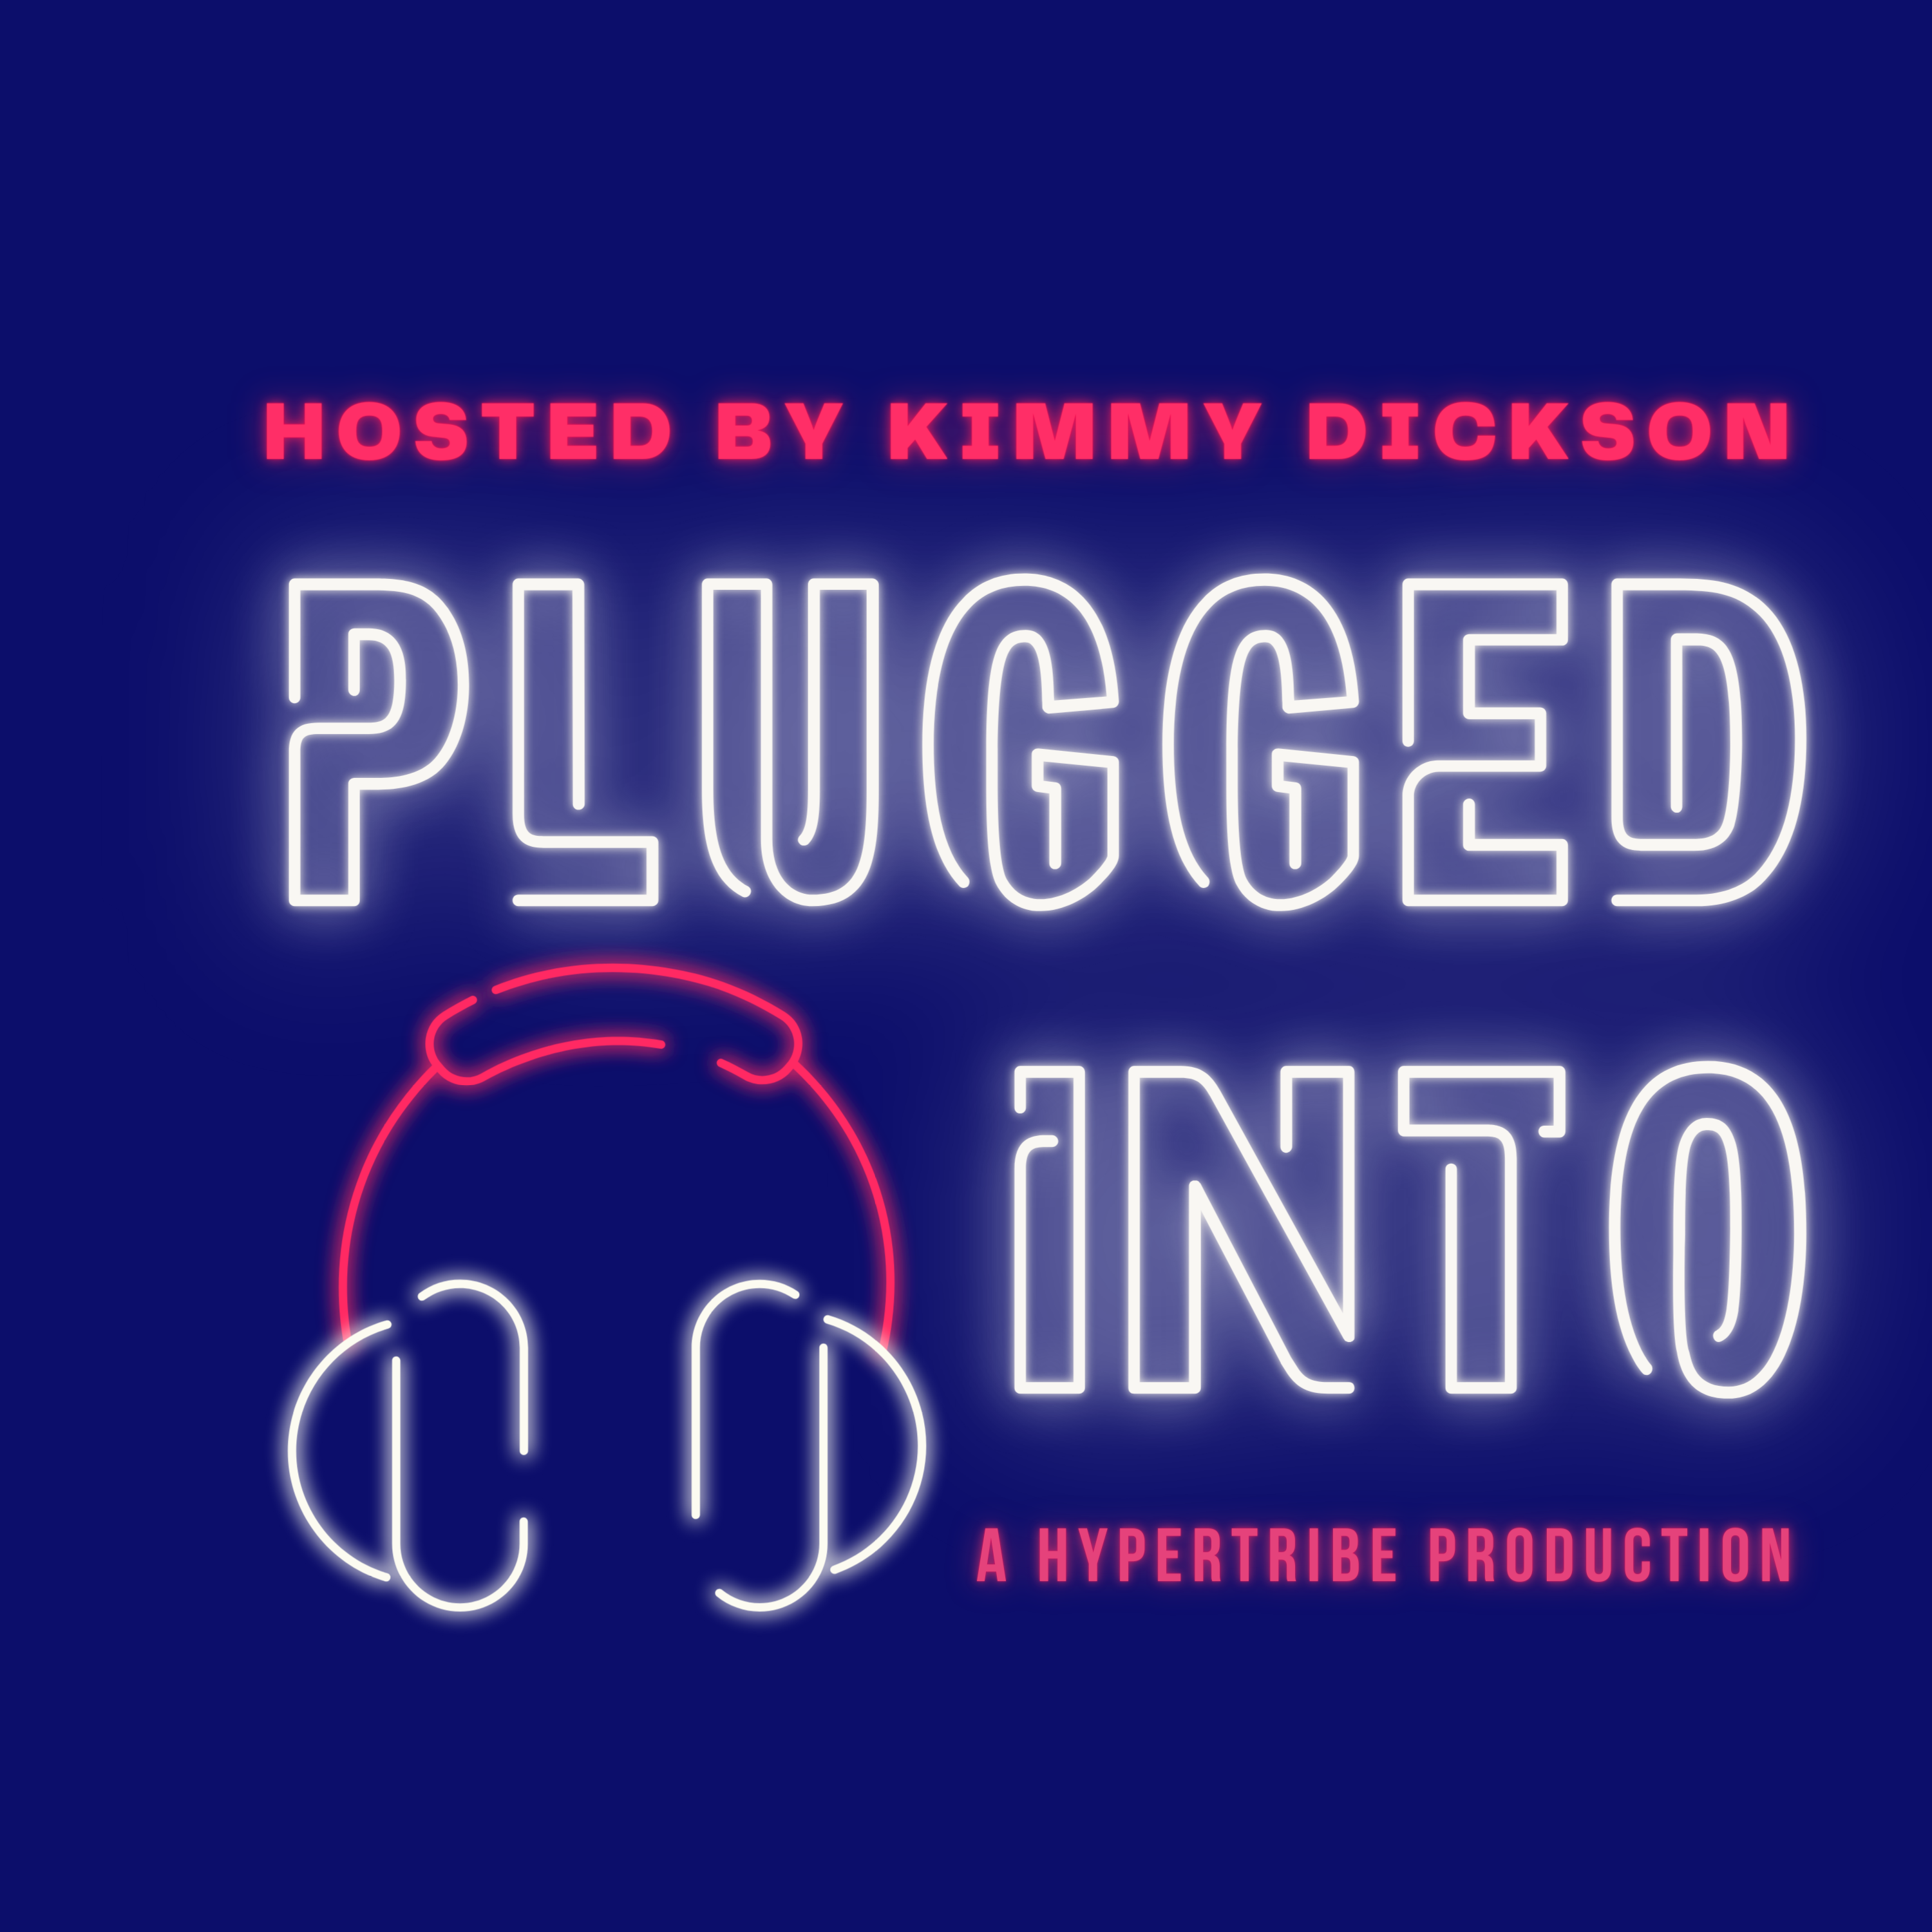 Artwork for podcast Plugged Into